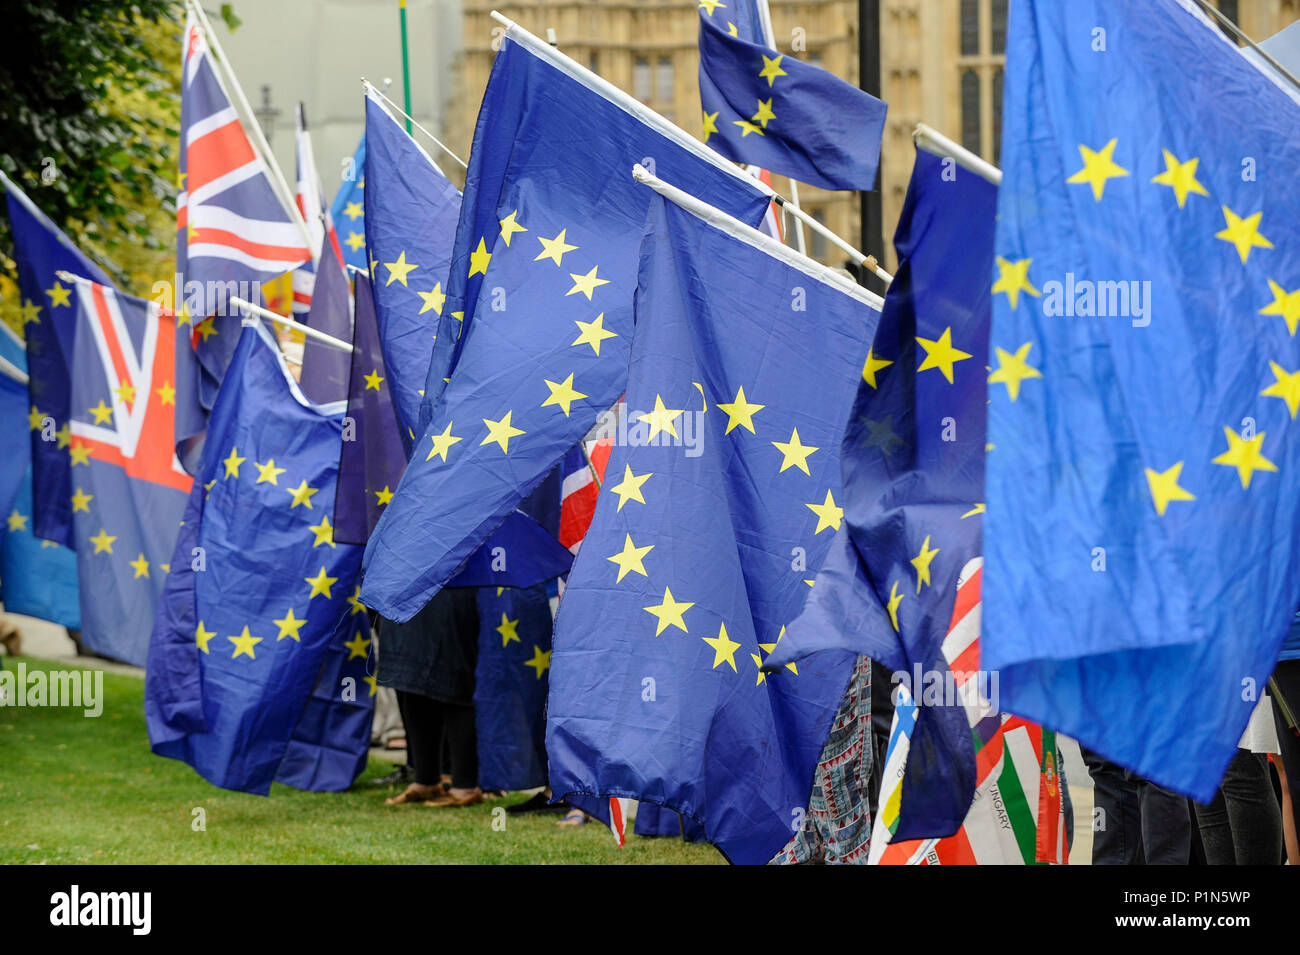 London, UK.  12 June 2018.  Anti-Brexit protesters carrying European Union flags demonstrate outside the Houses of Parliament as MPs begin two days of debate and vote on amendments to the EU Withdrawal Bill.   Credit: Stephen Chung / Alamy Live News - Stock Image